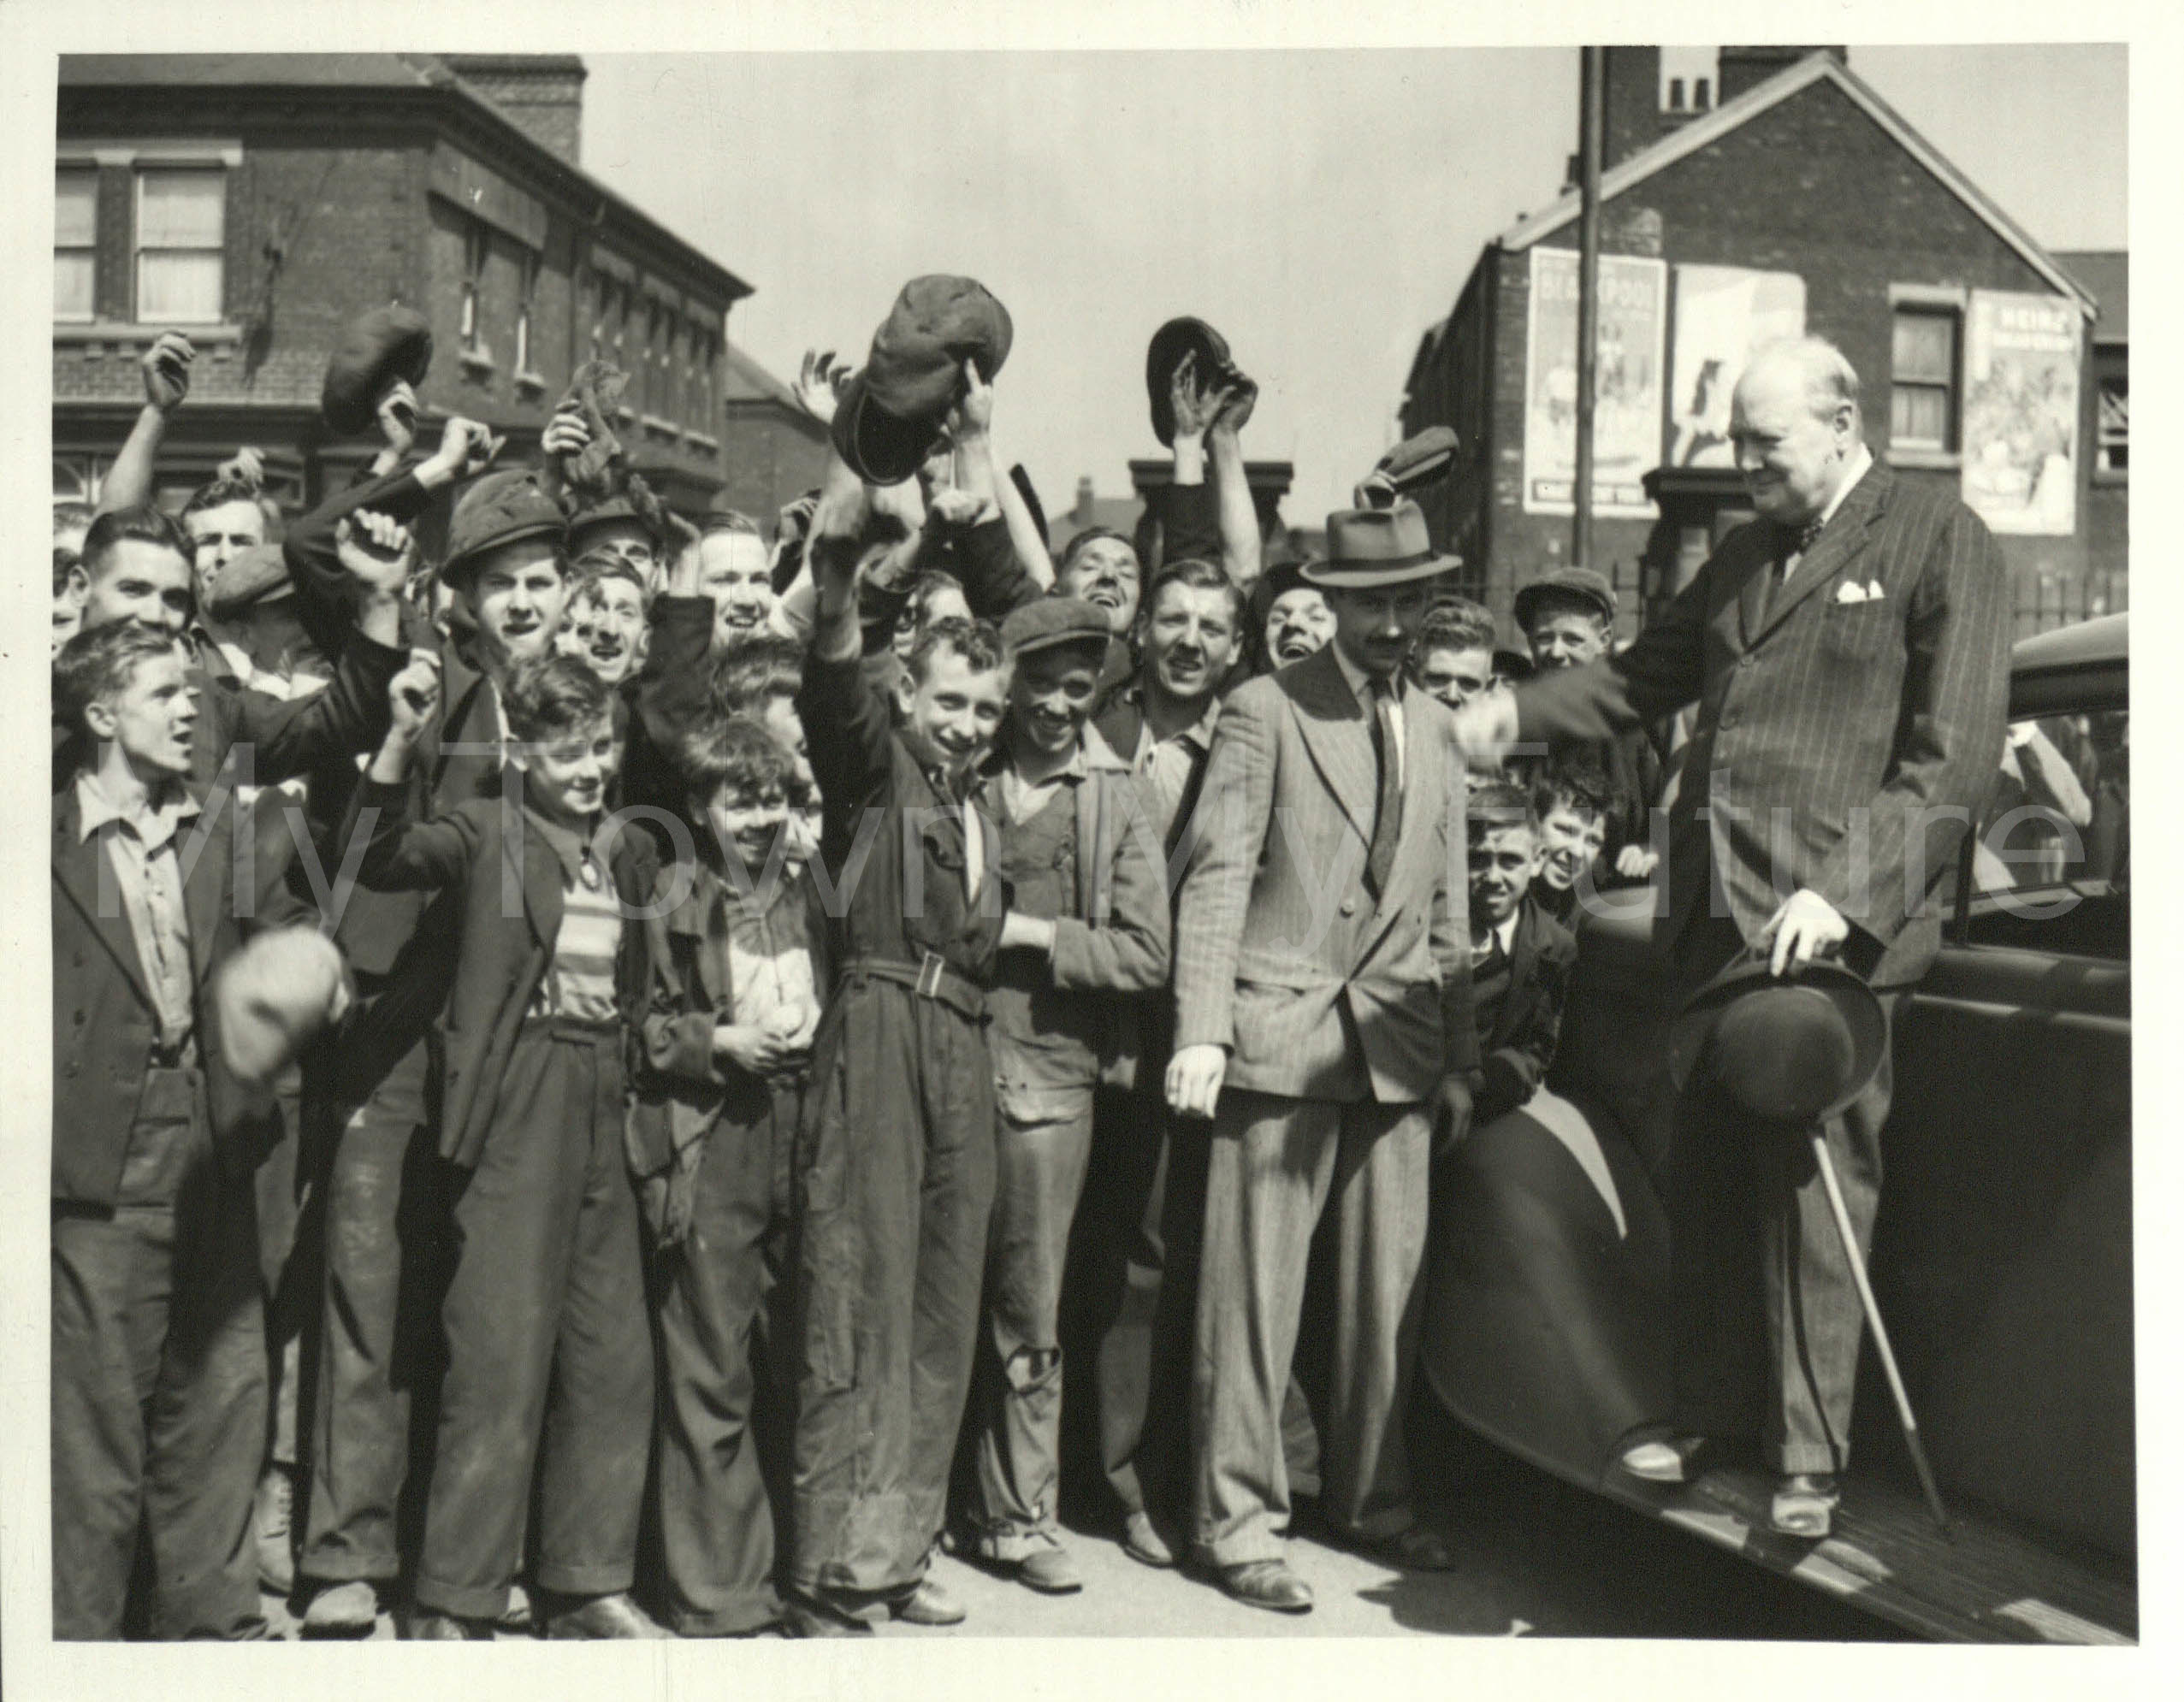 PM Winston Churchill - Shipyard workers Cheerrng_31st July 1940 - Visting Shipyard and Coastal Defences in North East. Imperial War Museum